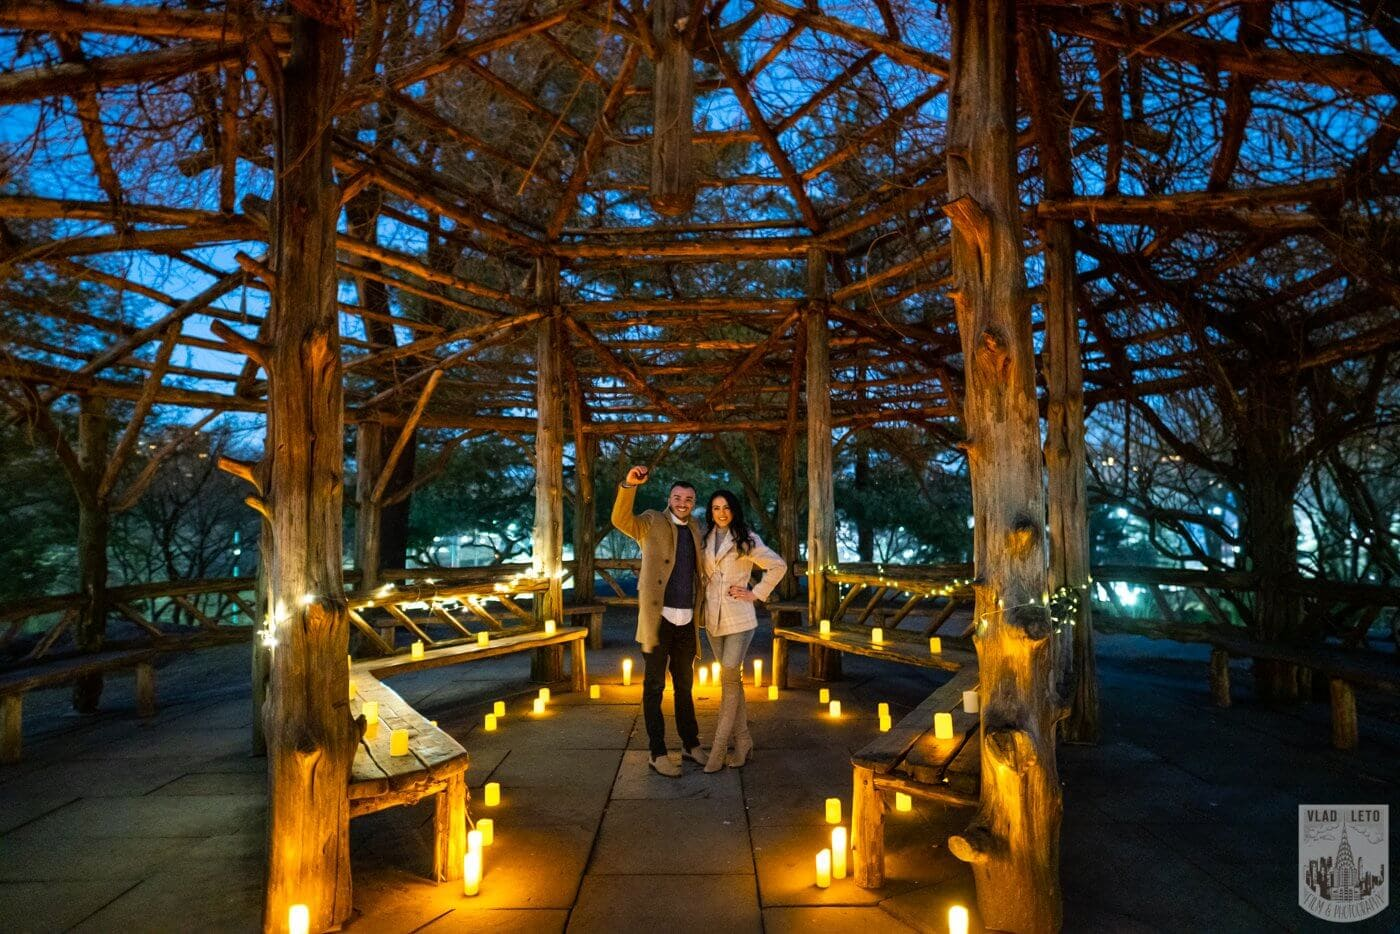 Photo 5 Night Proposal with Candles in Central Park | VladLeto